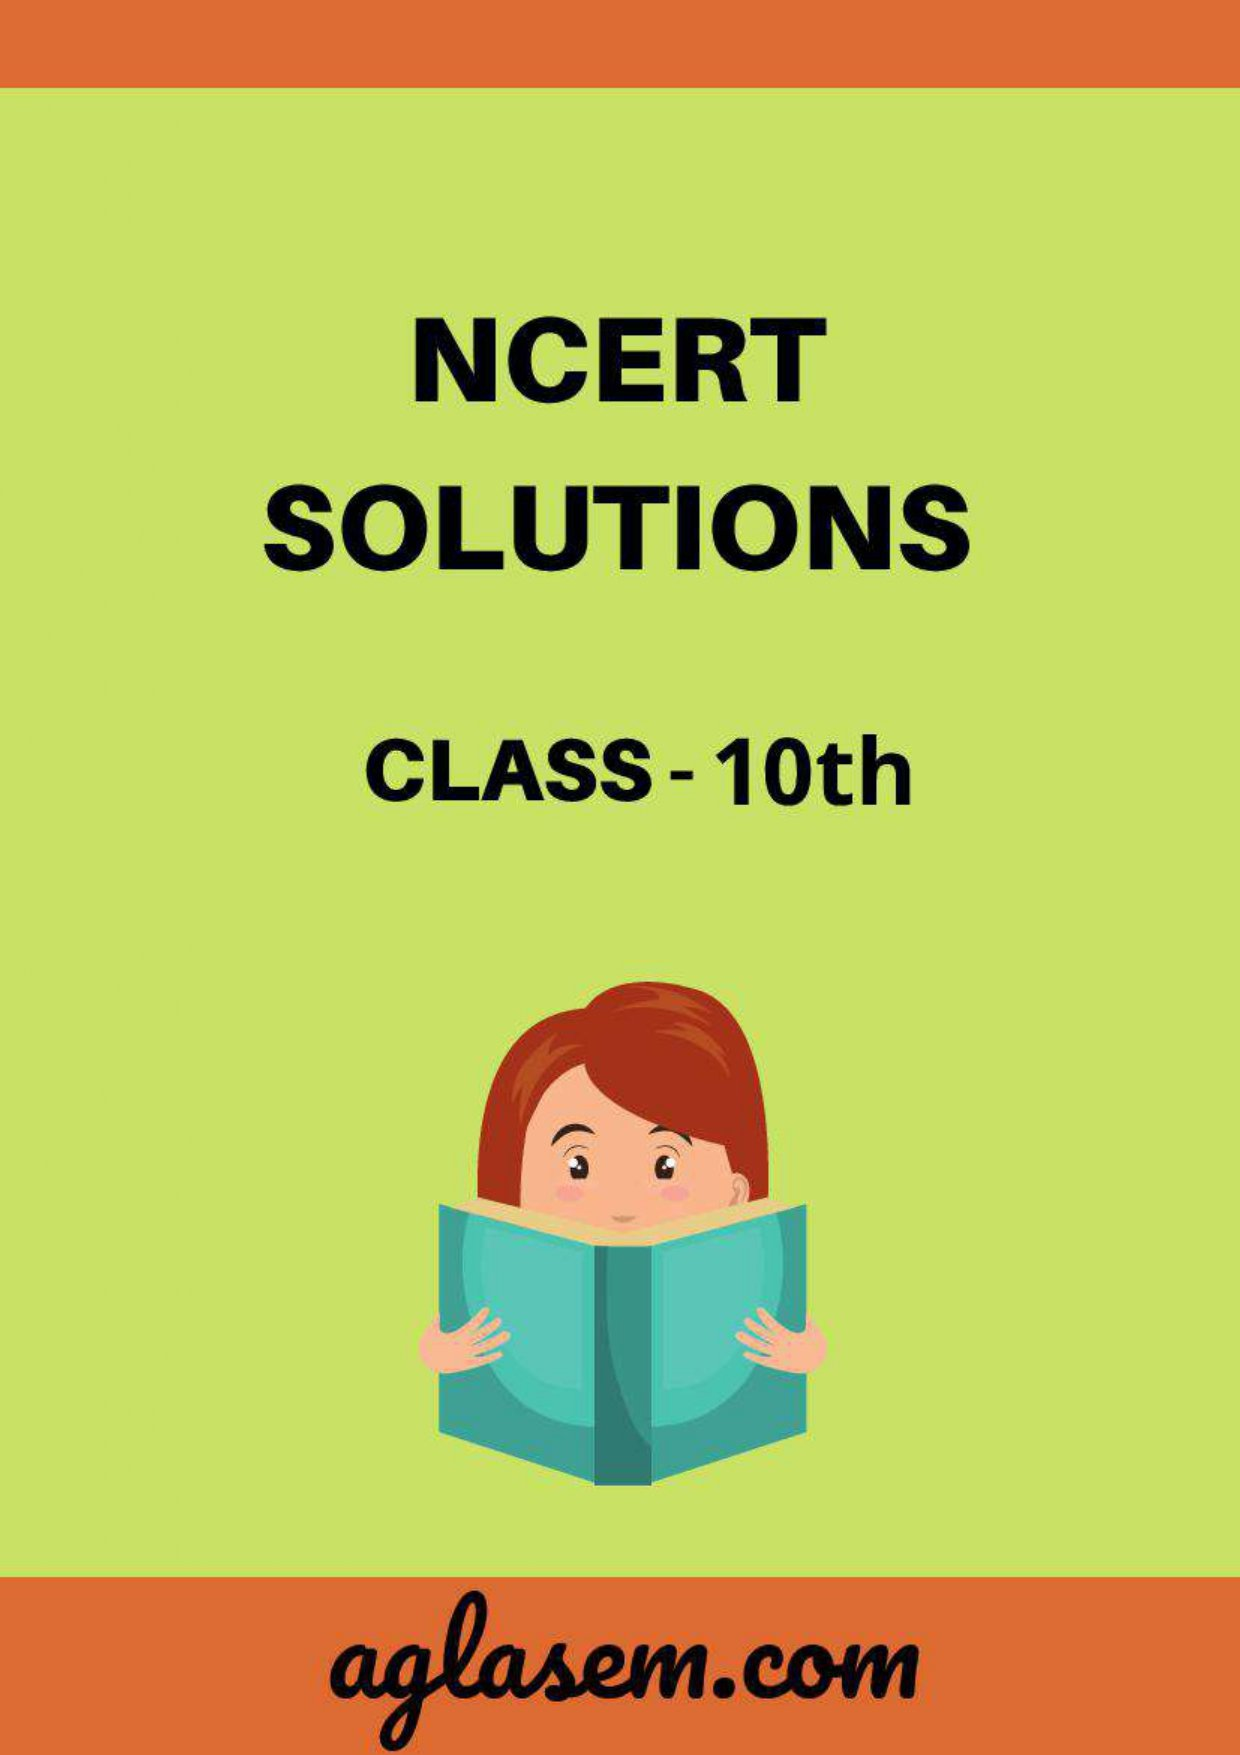 NCERT Solutions for Class 10 गणित Chapter 10 गणित (गणित) Chapter 10 वृत (Hindi Medium) - Page 1